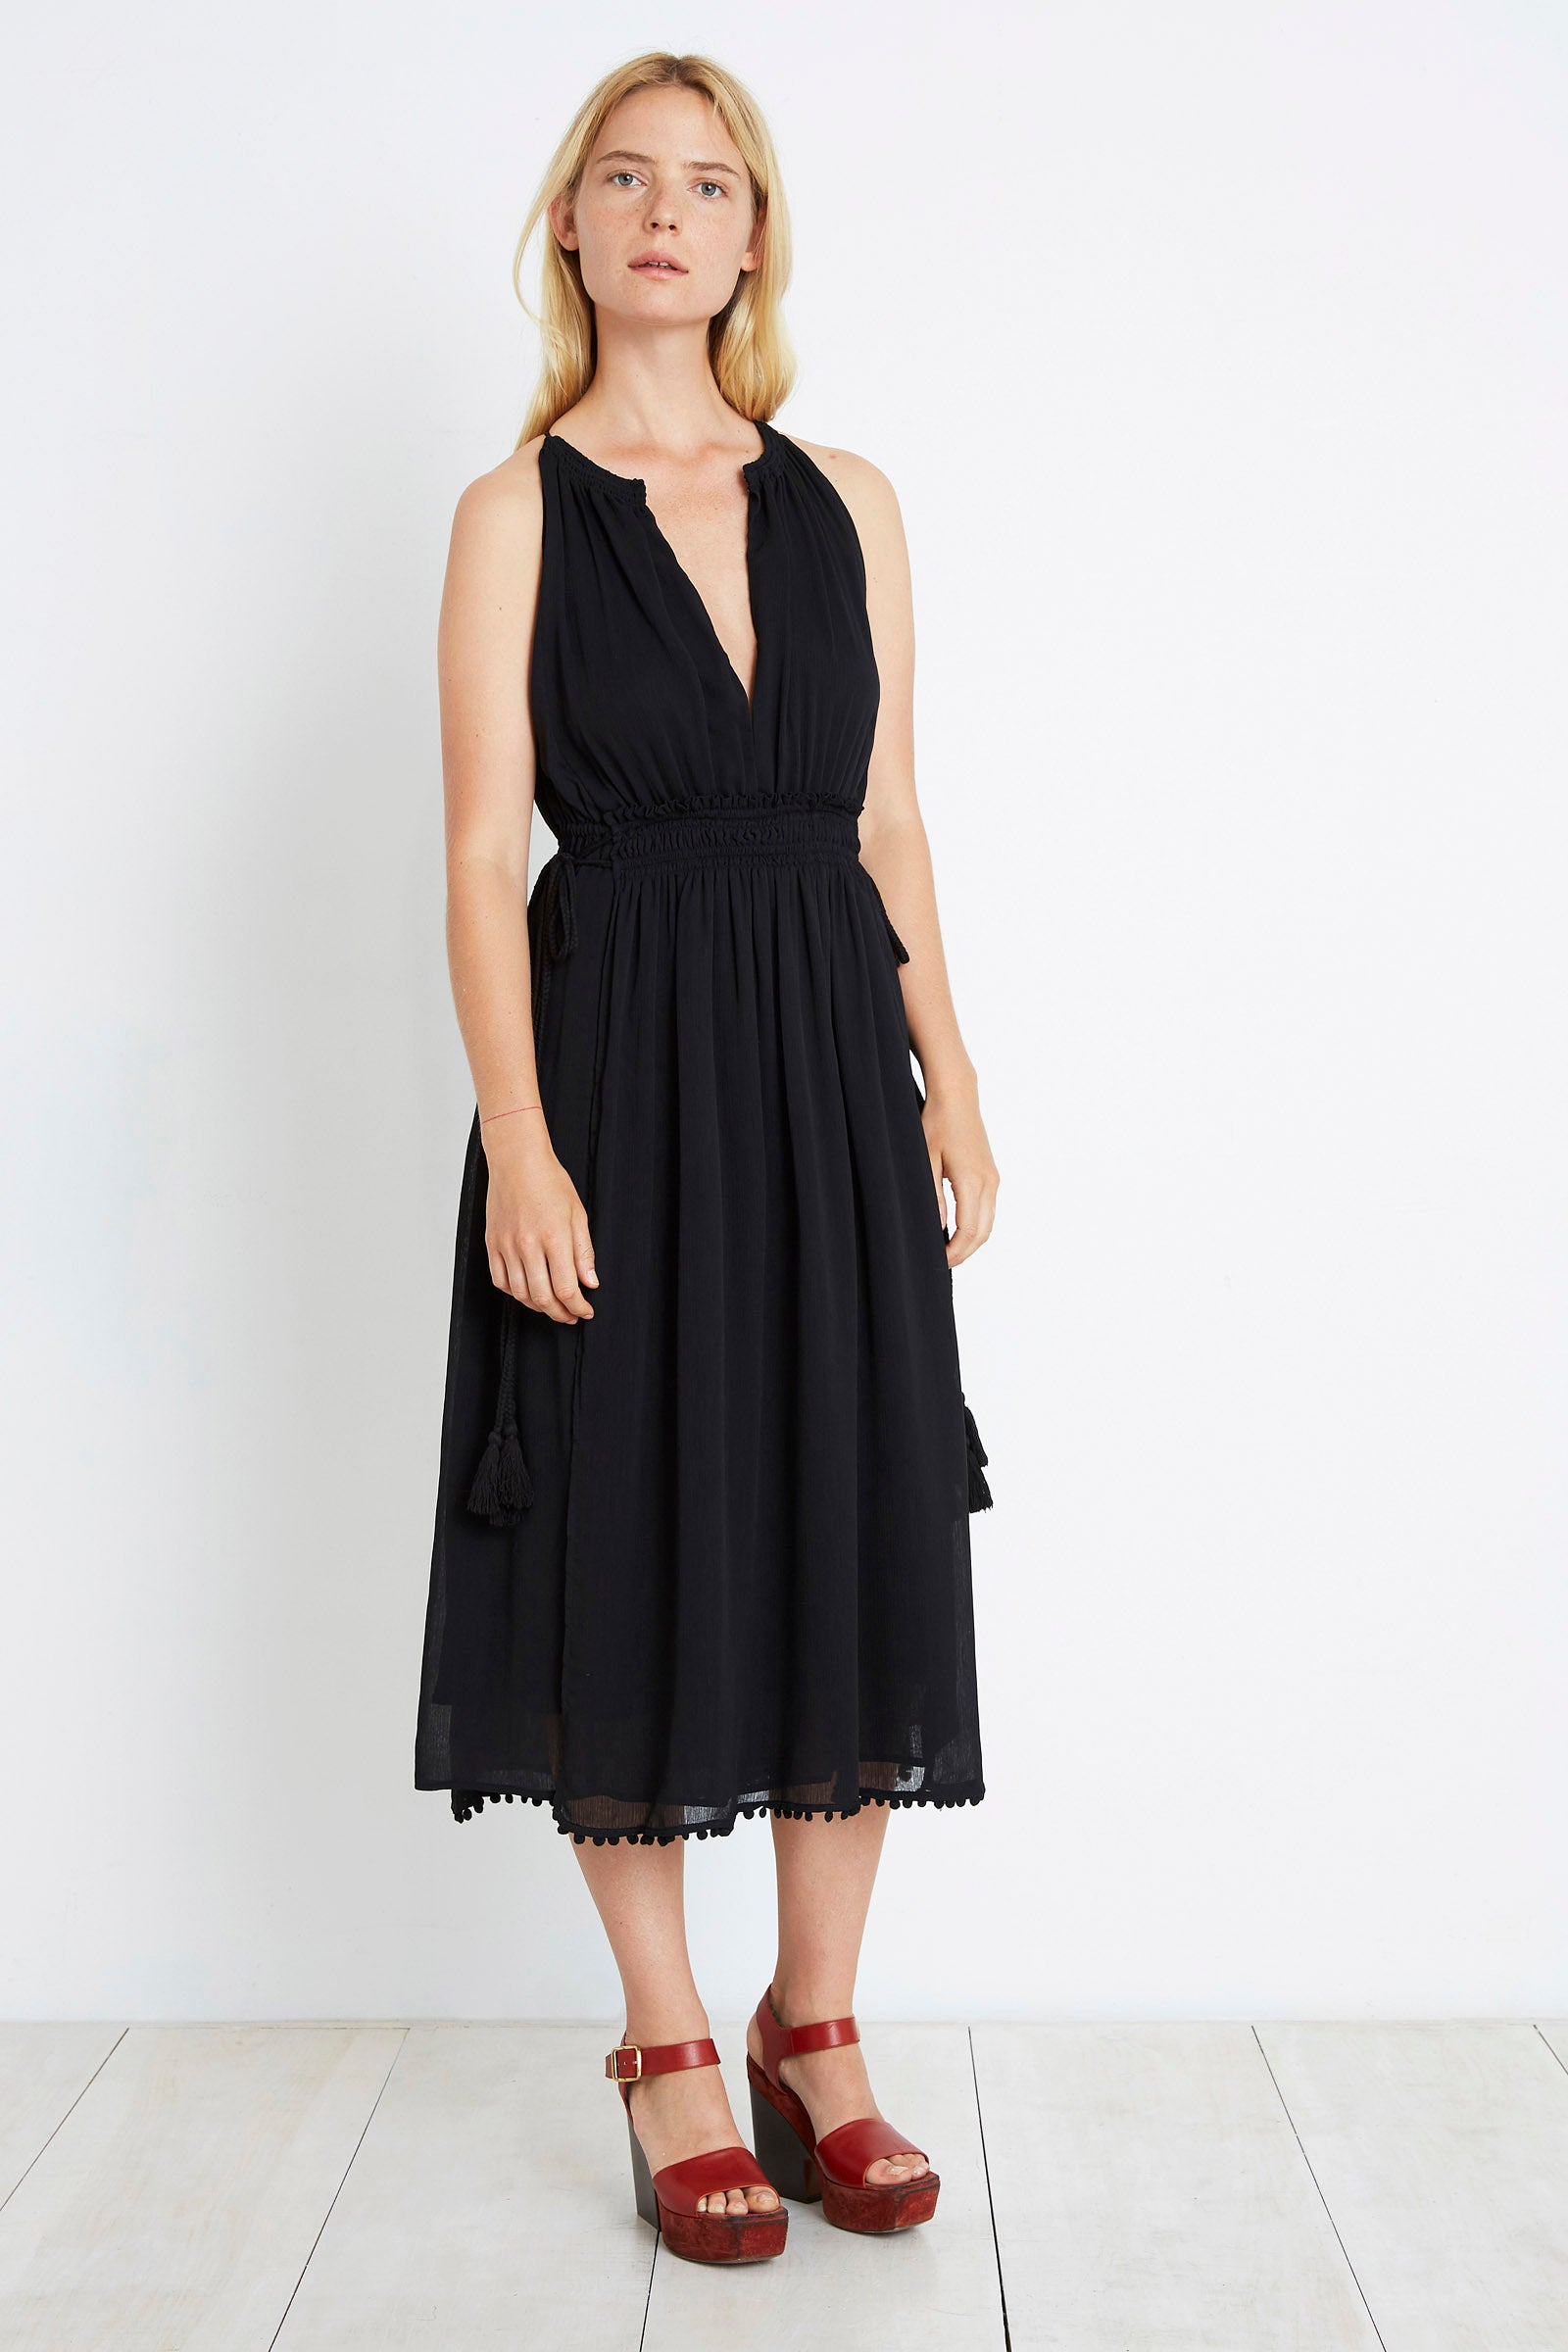 Apiece Apart FW16 Lippard Dress Black